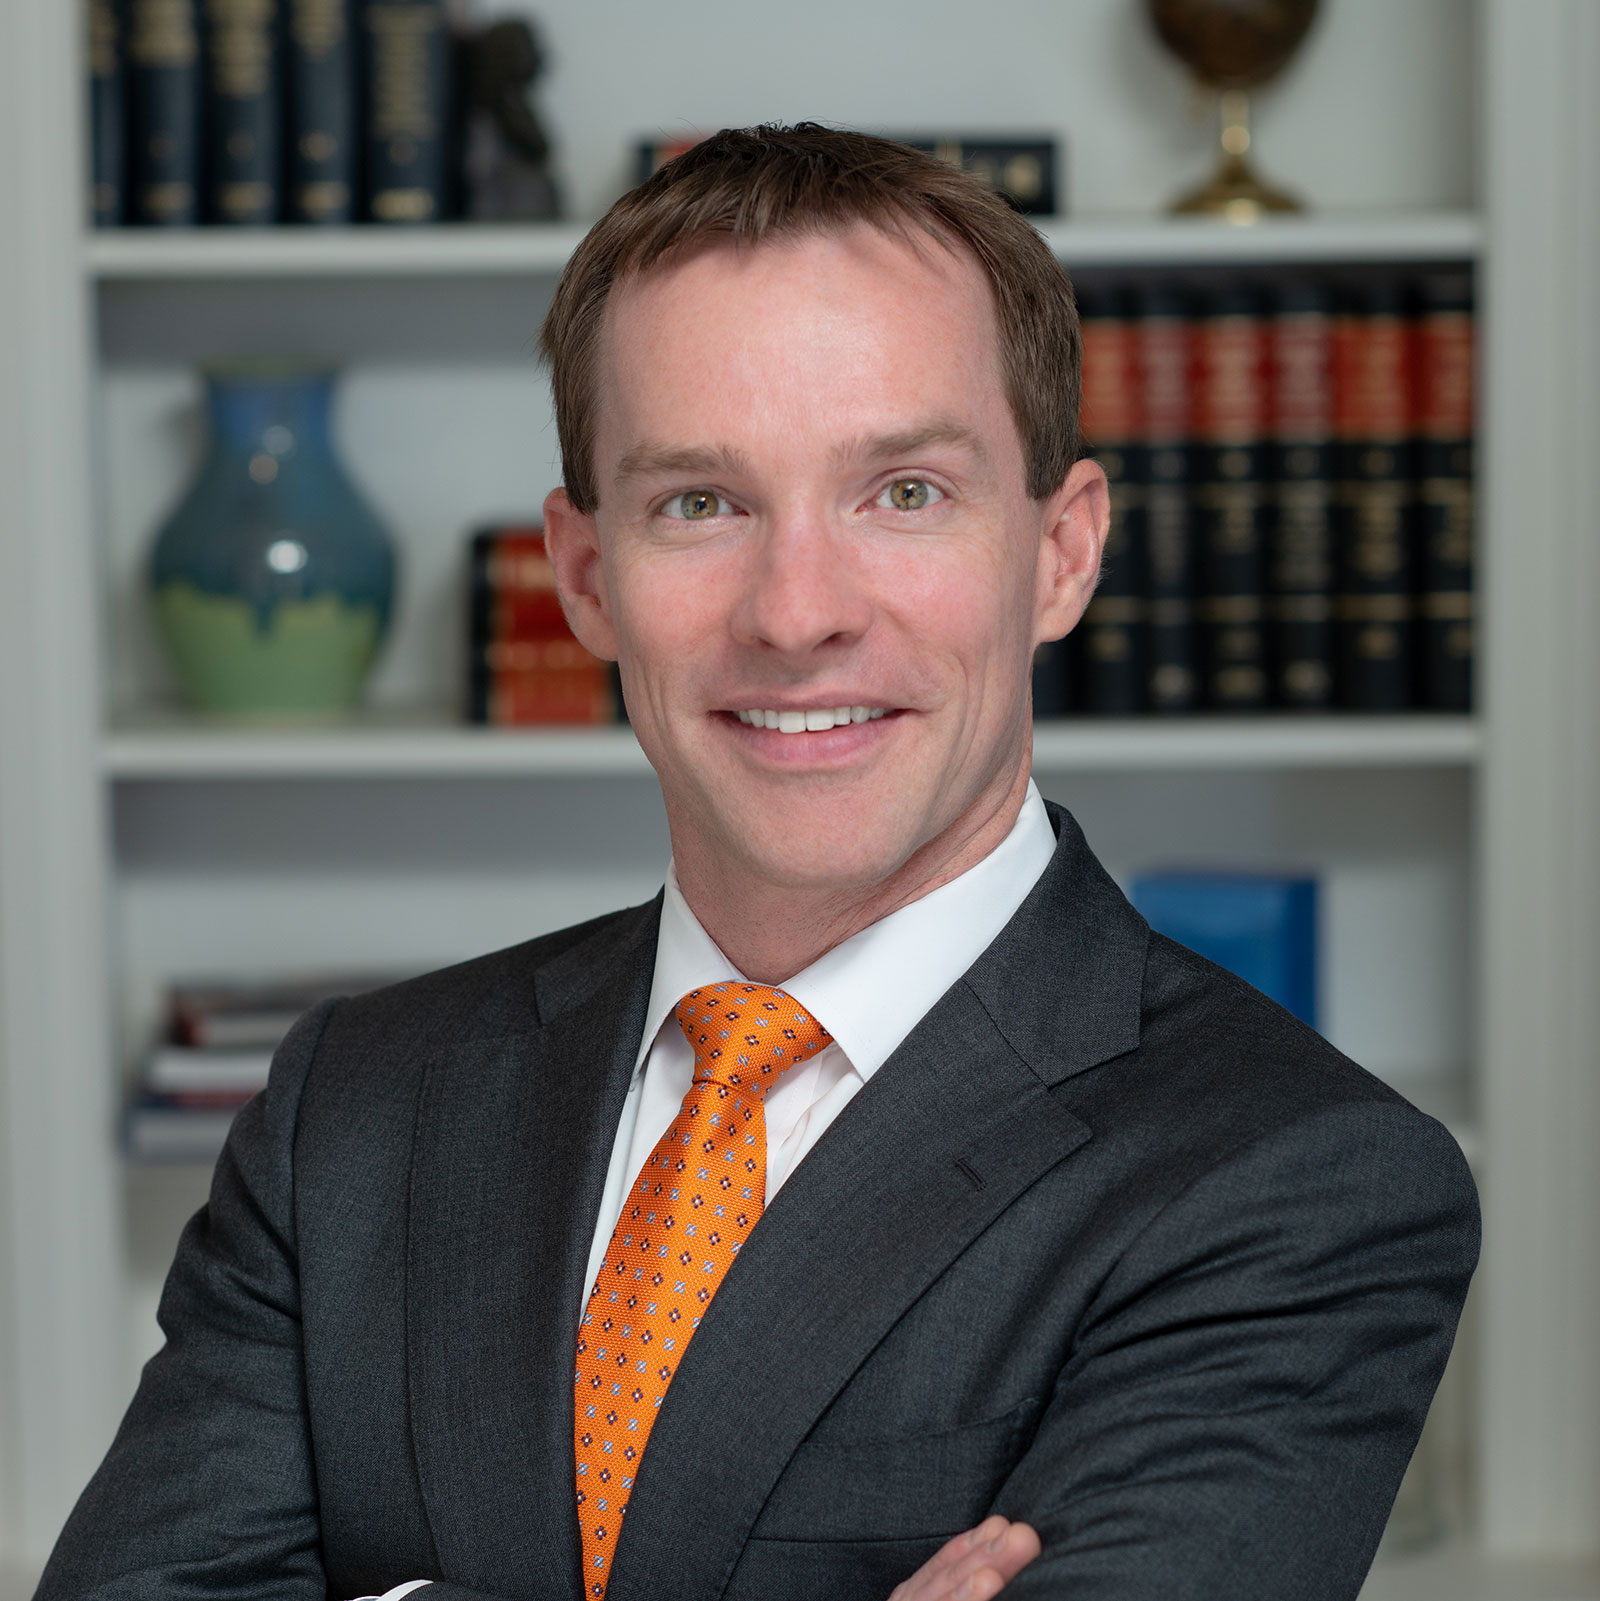 Head shot of David Metzger, a real estate lawyer with Williams Teusink serving Decatur, Georgia and DeKalb County.